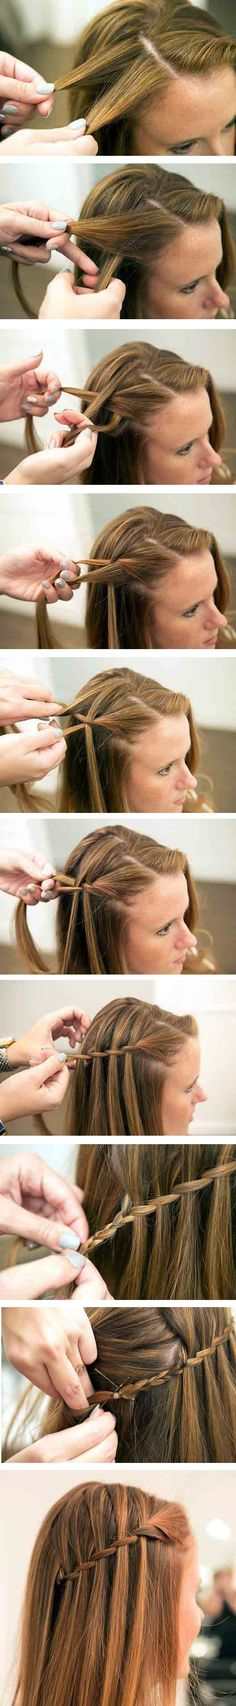 The Waterfall Braid Tutorial – Step by Step. I need to learn how to do this. I love it so much